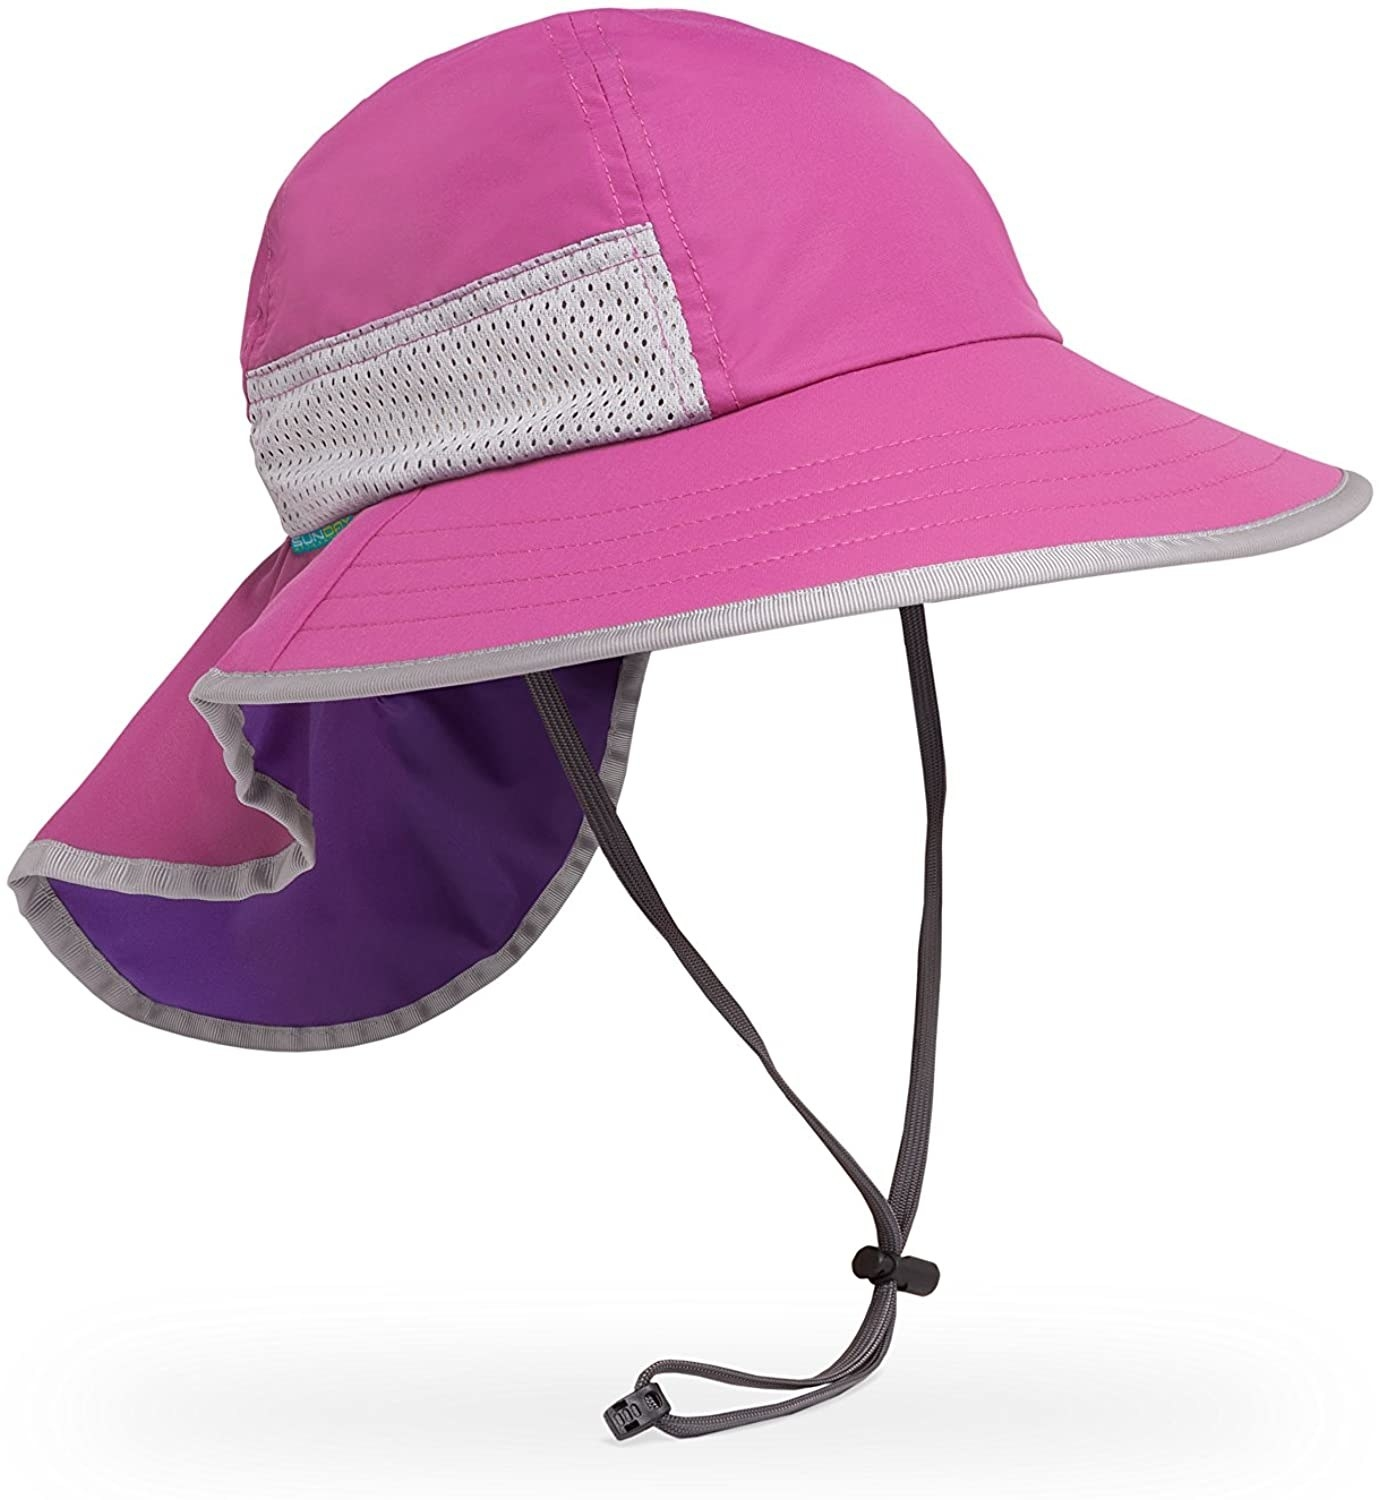 The kids' hat in blossom